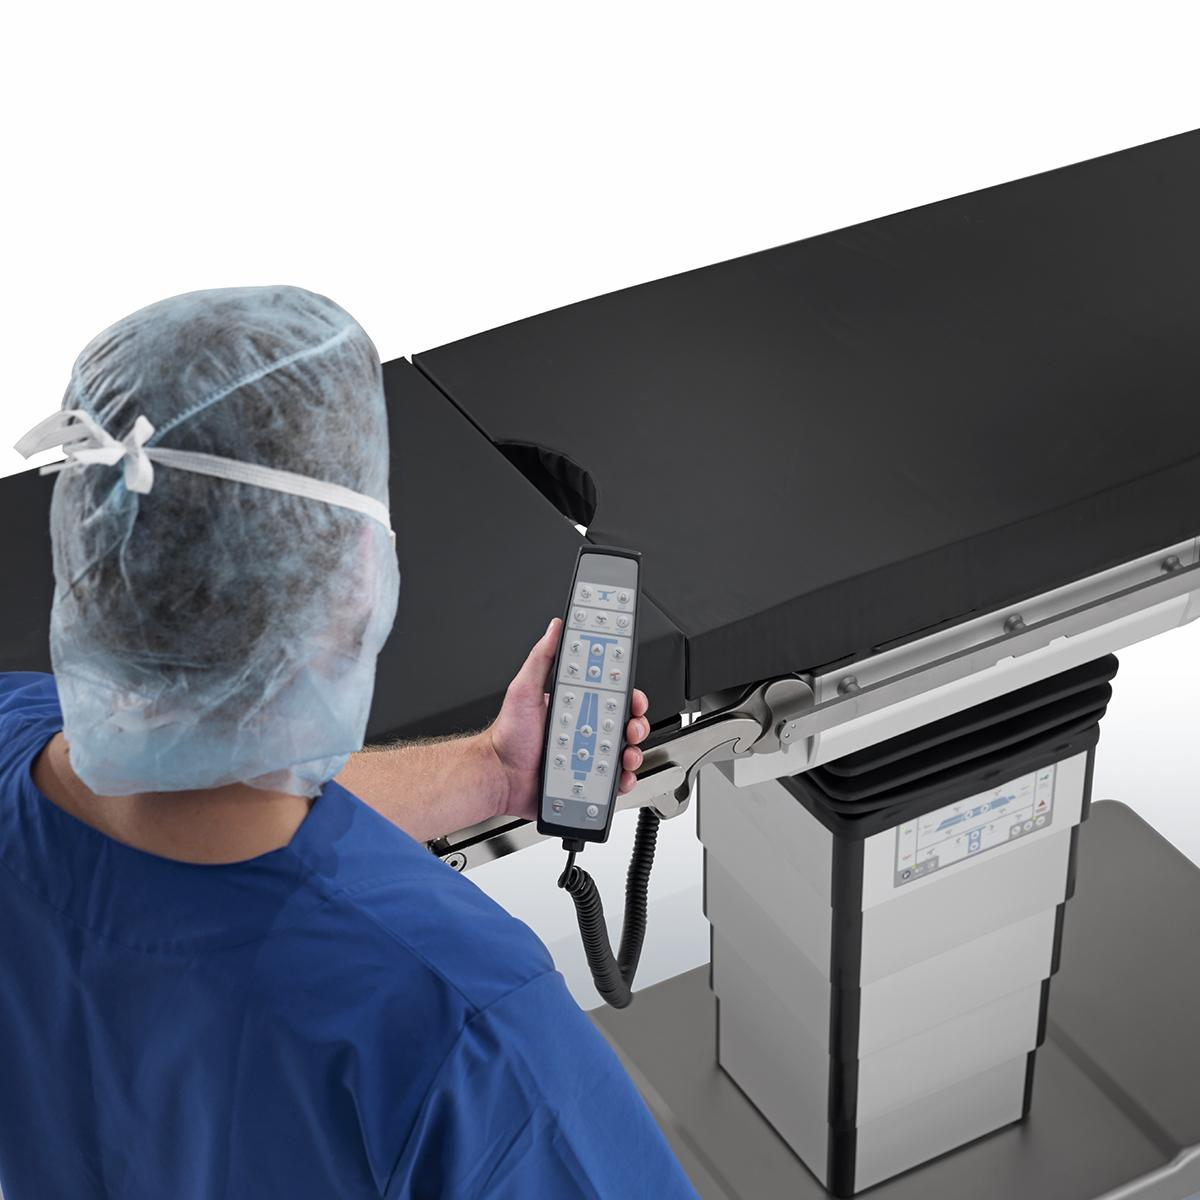 PST 500 Precision Surgical Table, non-display remote control